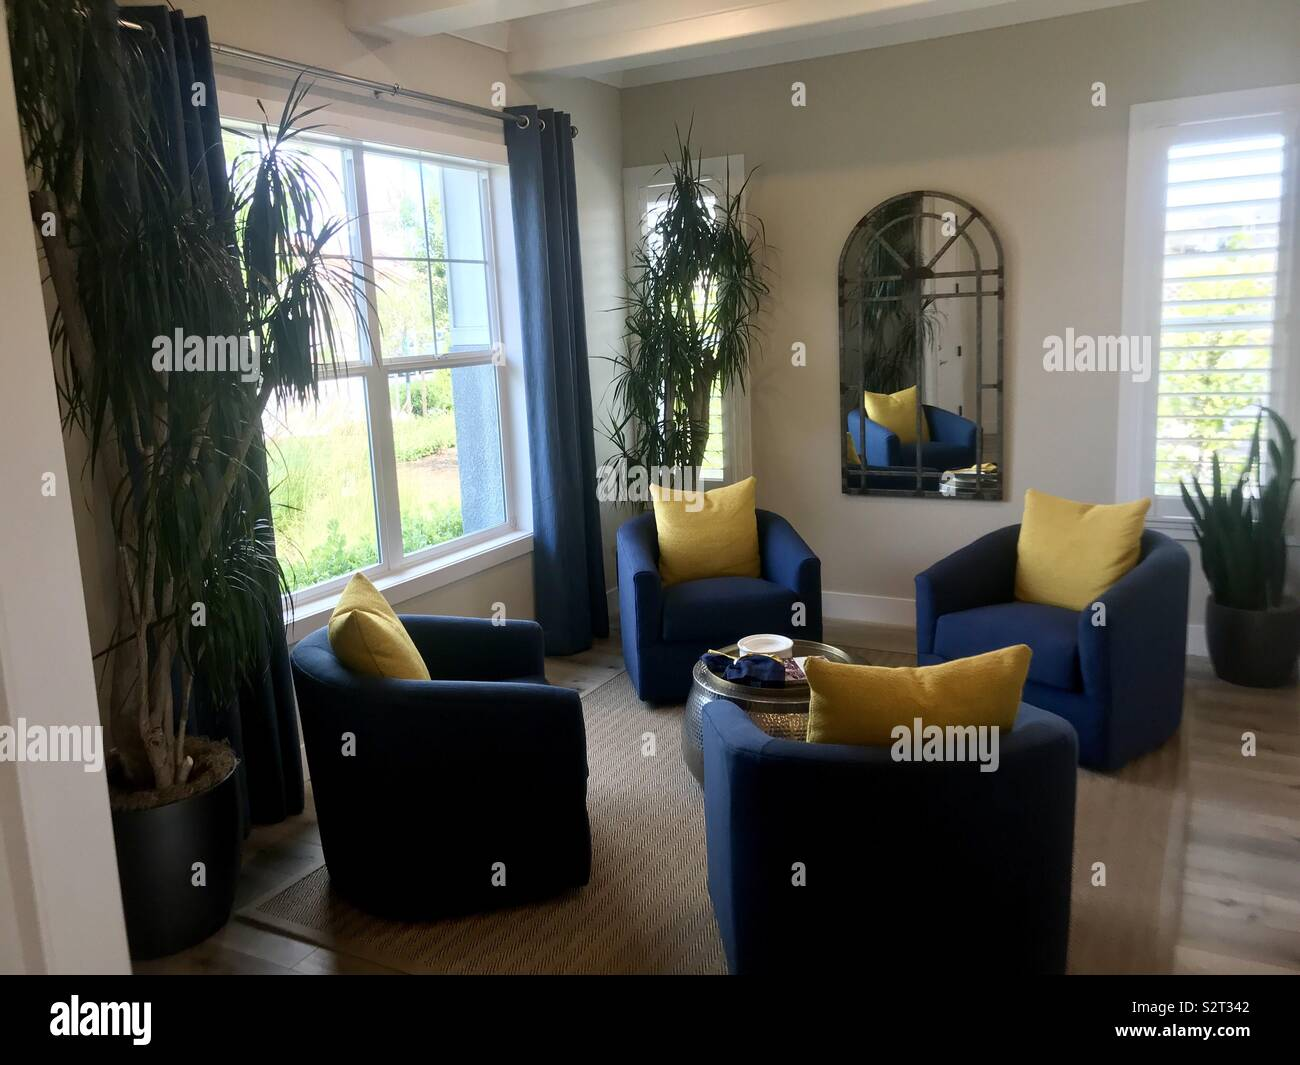 A room decorated with brightly colored furniture of blue and yellow with plants - Stock Image